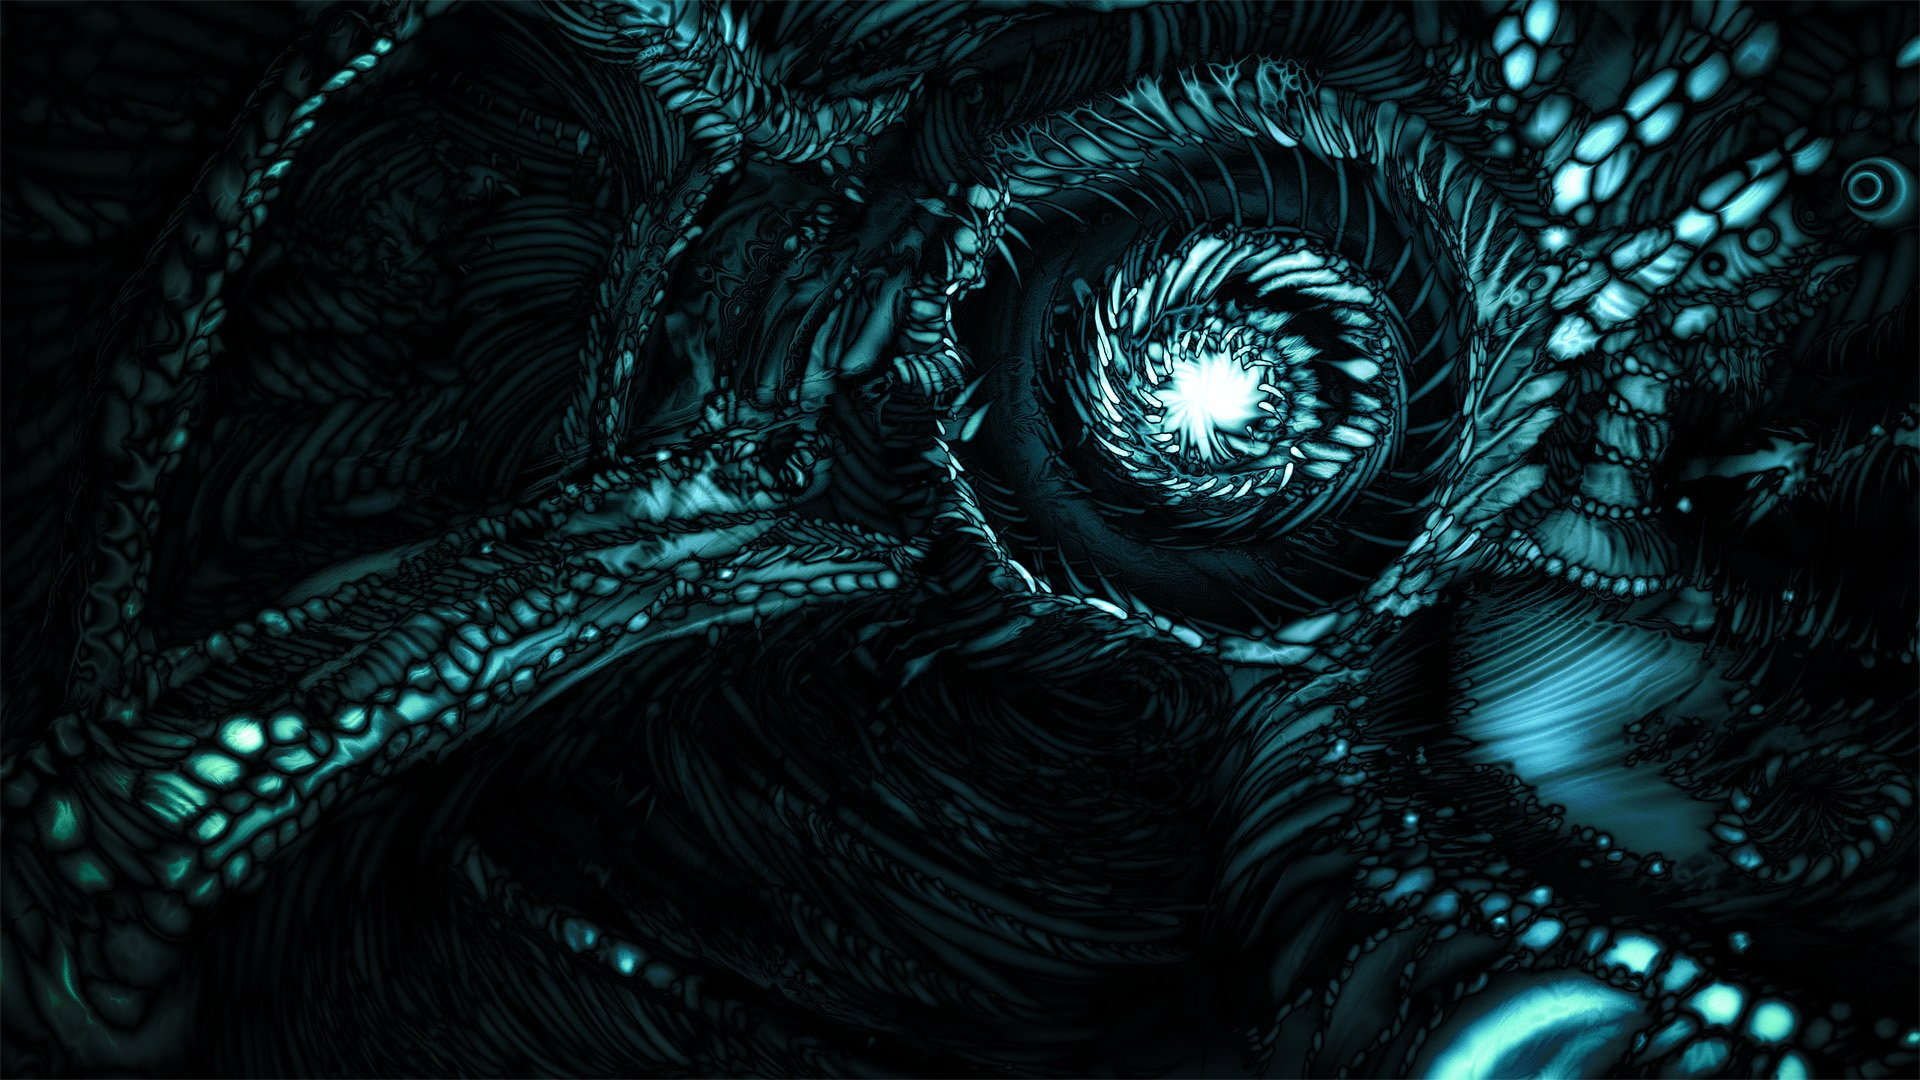 Cool Desktop Backgrounds 40 Cool Wallpapers To Download 1920x1080